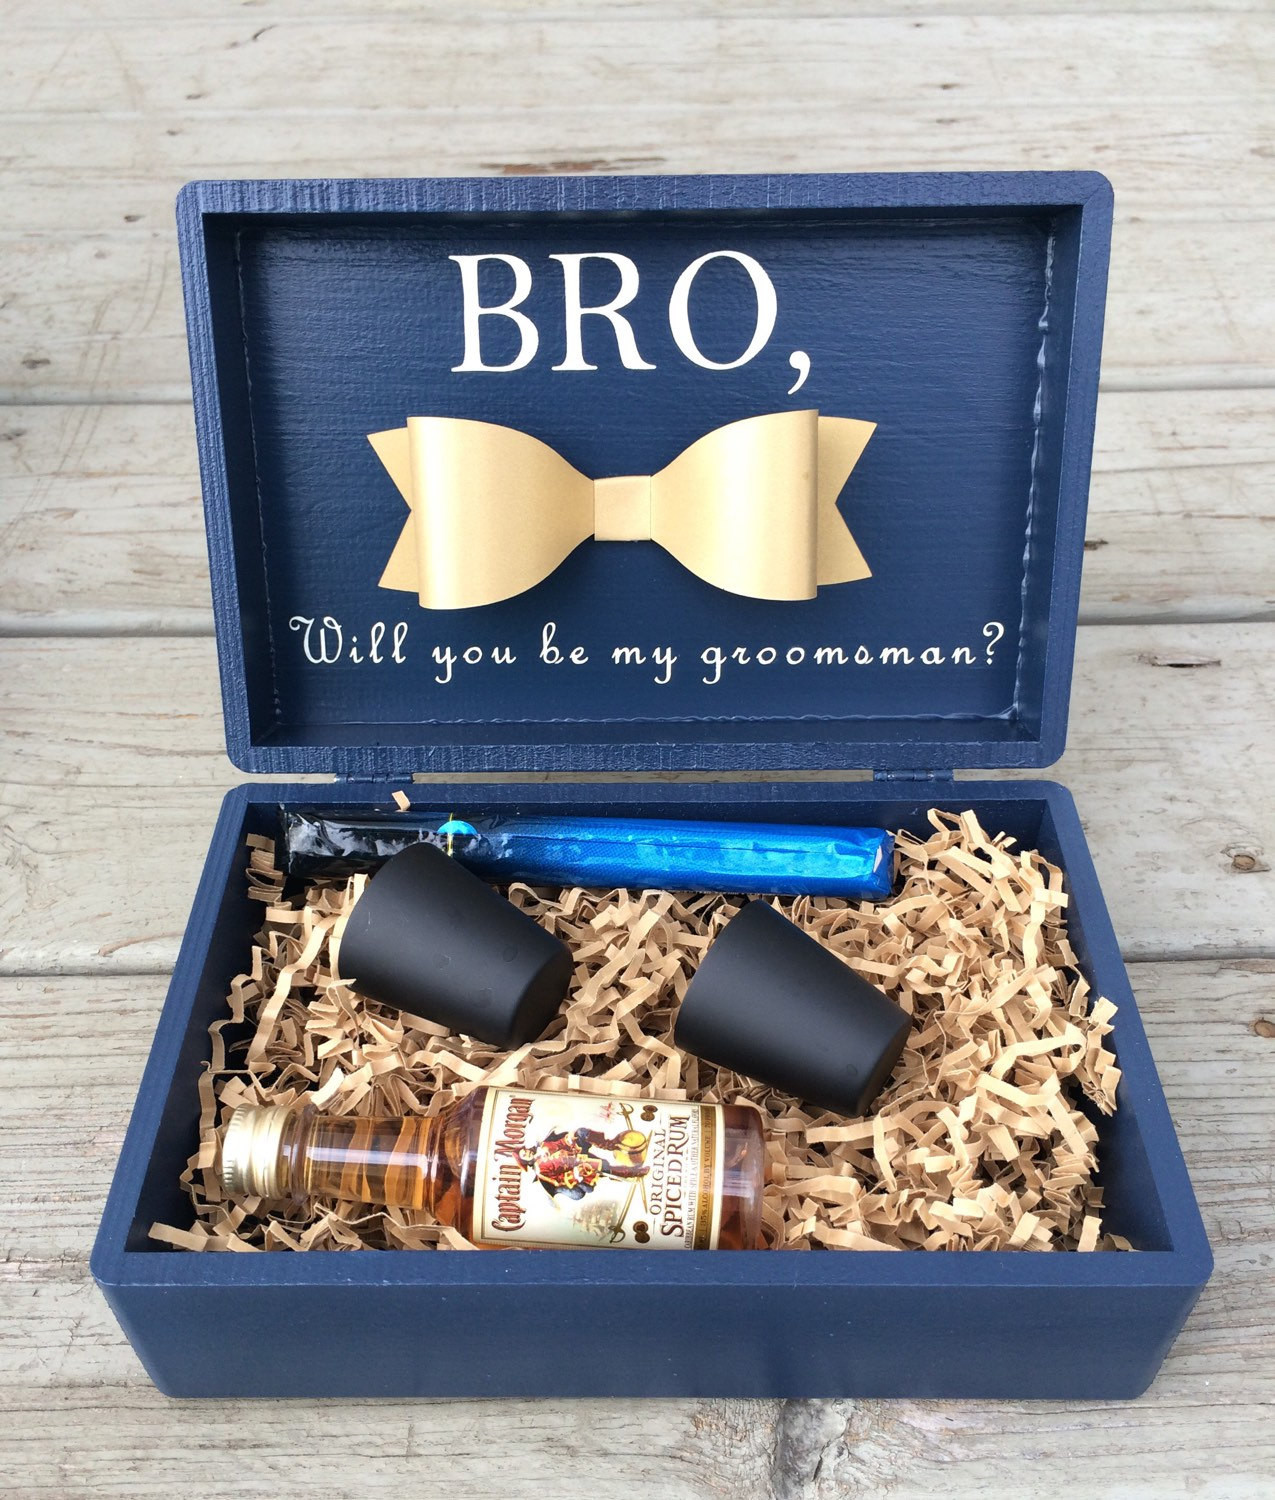 Best ideas about Grooms Gift Ideas . Save or Pin Best Man Groomsmen Gift BoxBest Man BoxGroomsman BoxBridal Now.